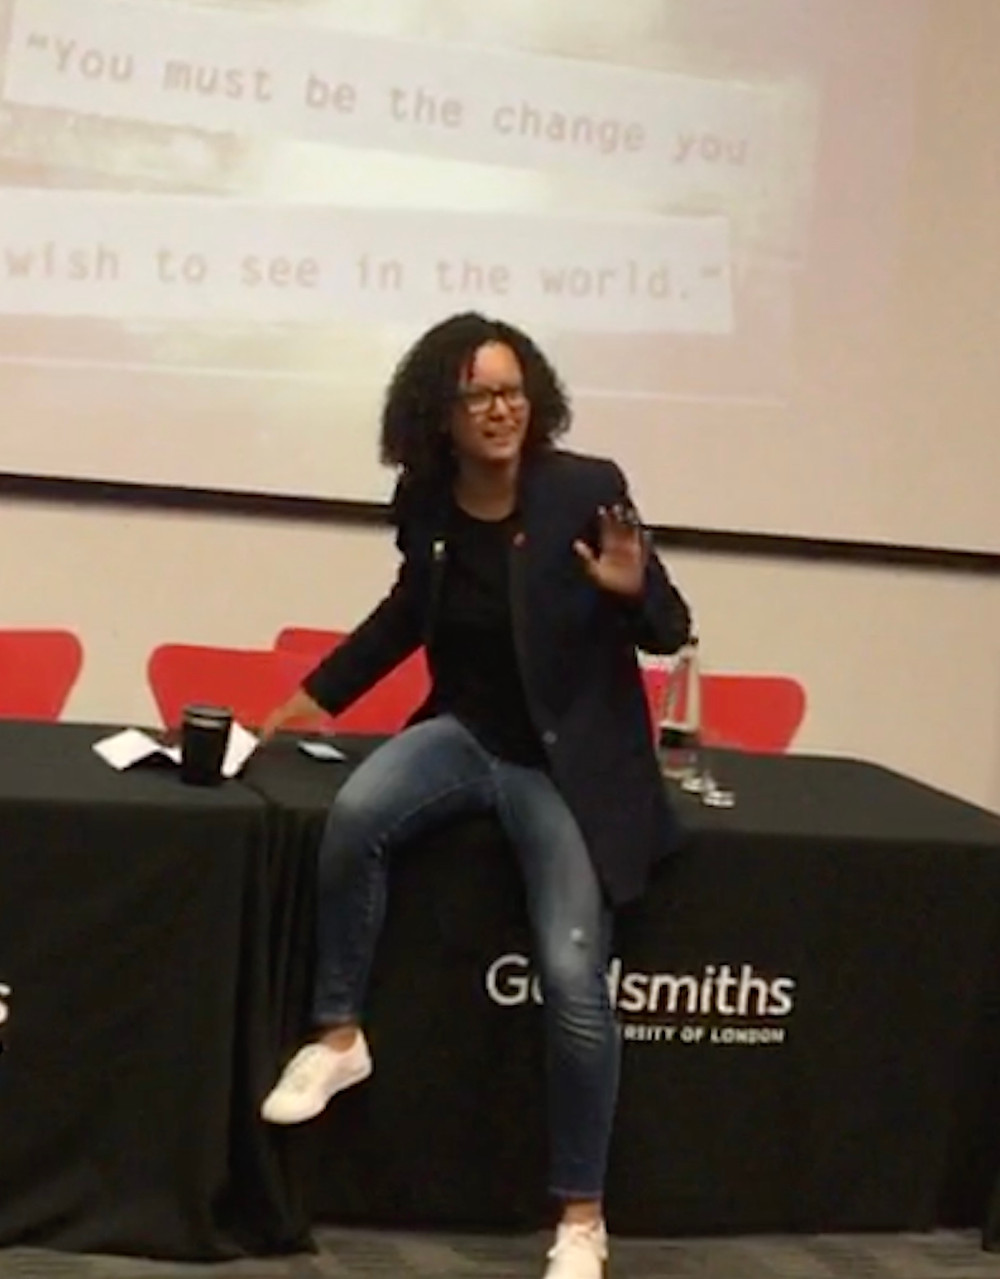 Mandu Reid sitting on the edge of a table with her hand in the air